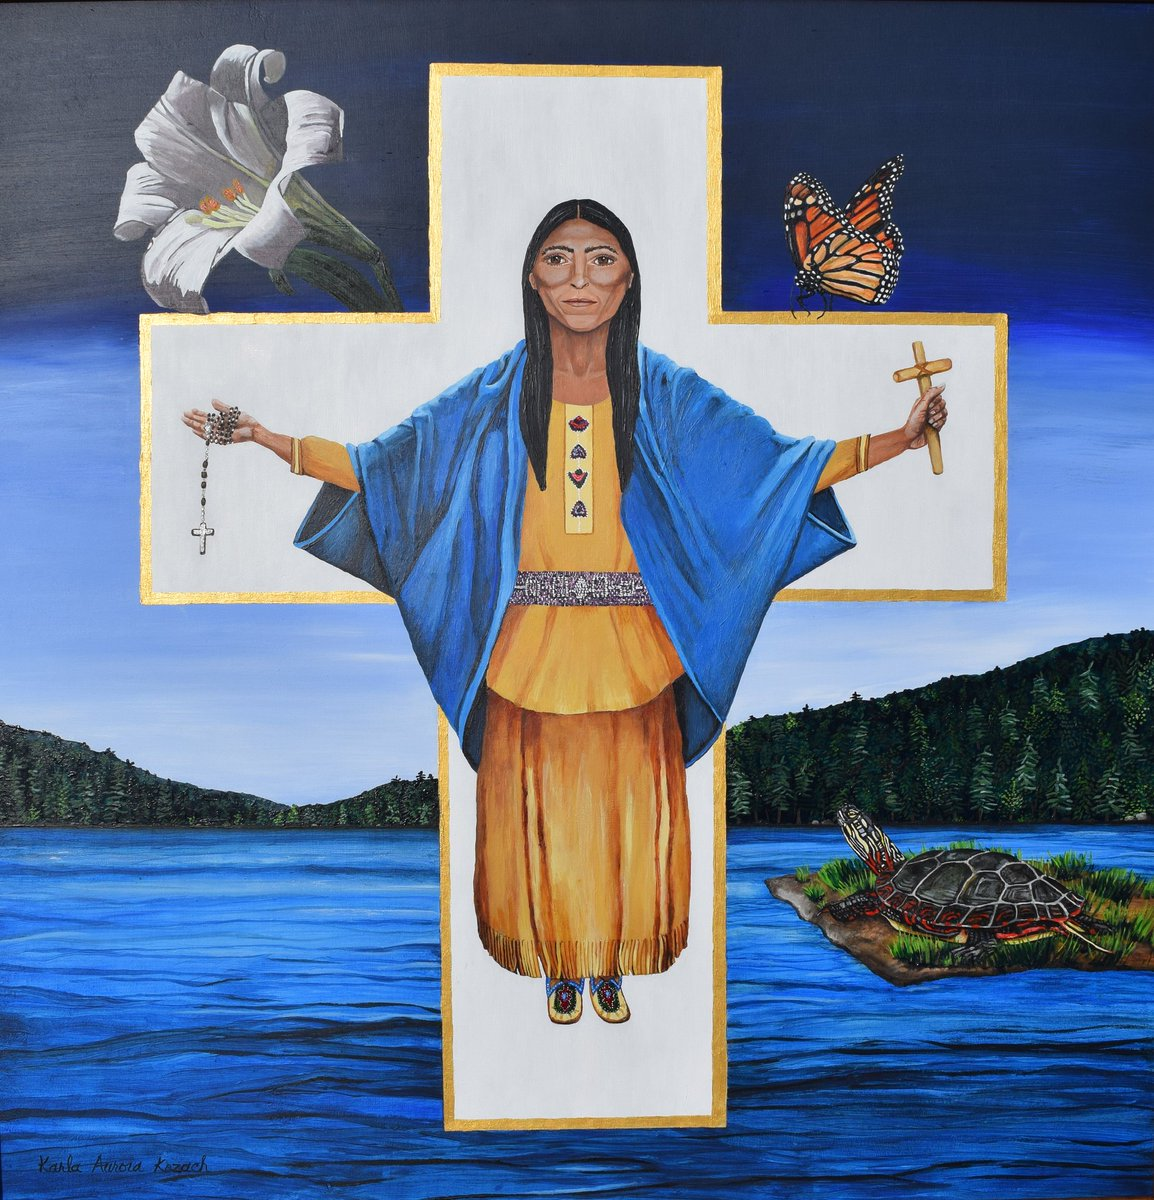 Saint Kateri, patroness of ecology and Native American Peoples, pray for us. Painting by Karla Kozach. #Catholic #ecology #NativeAmerican #FirstNations #IntegralEcology #NationalShrine #NationalHistoricSite #Kateri #Tekakwitha #Fonda #Albany #TraditionalEcologicalKnowledge<br>http://pic.twitter.com/RIchih05k6